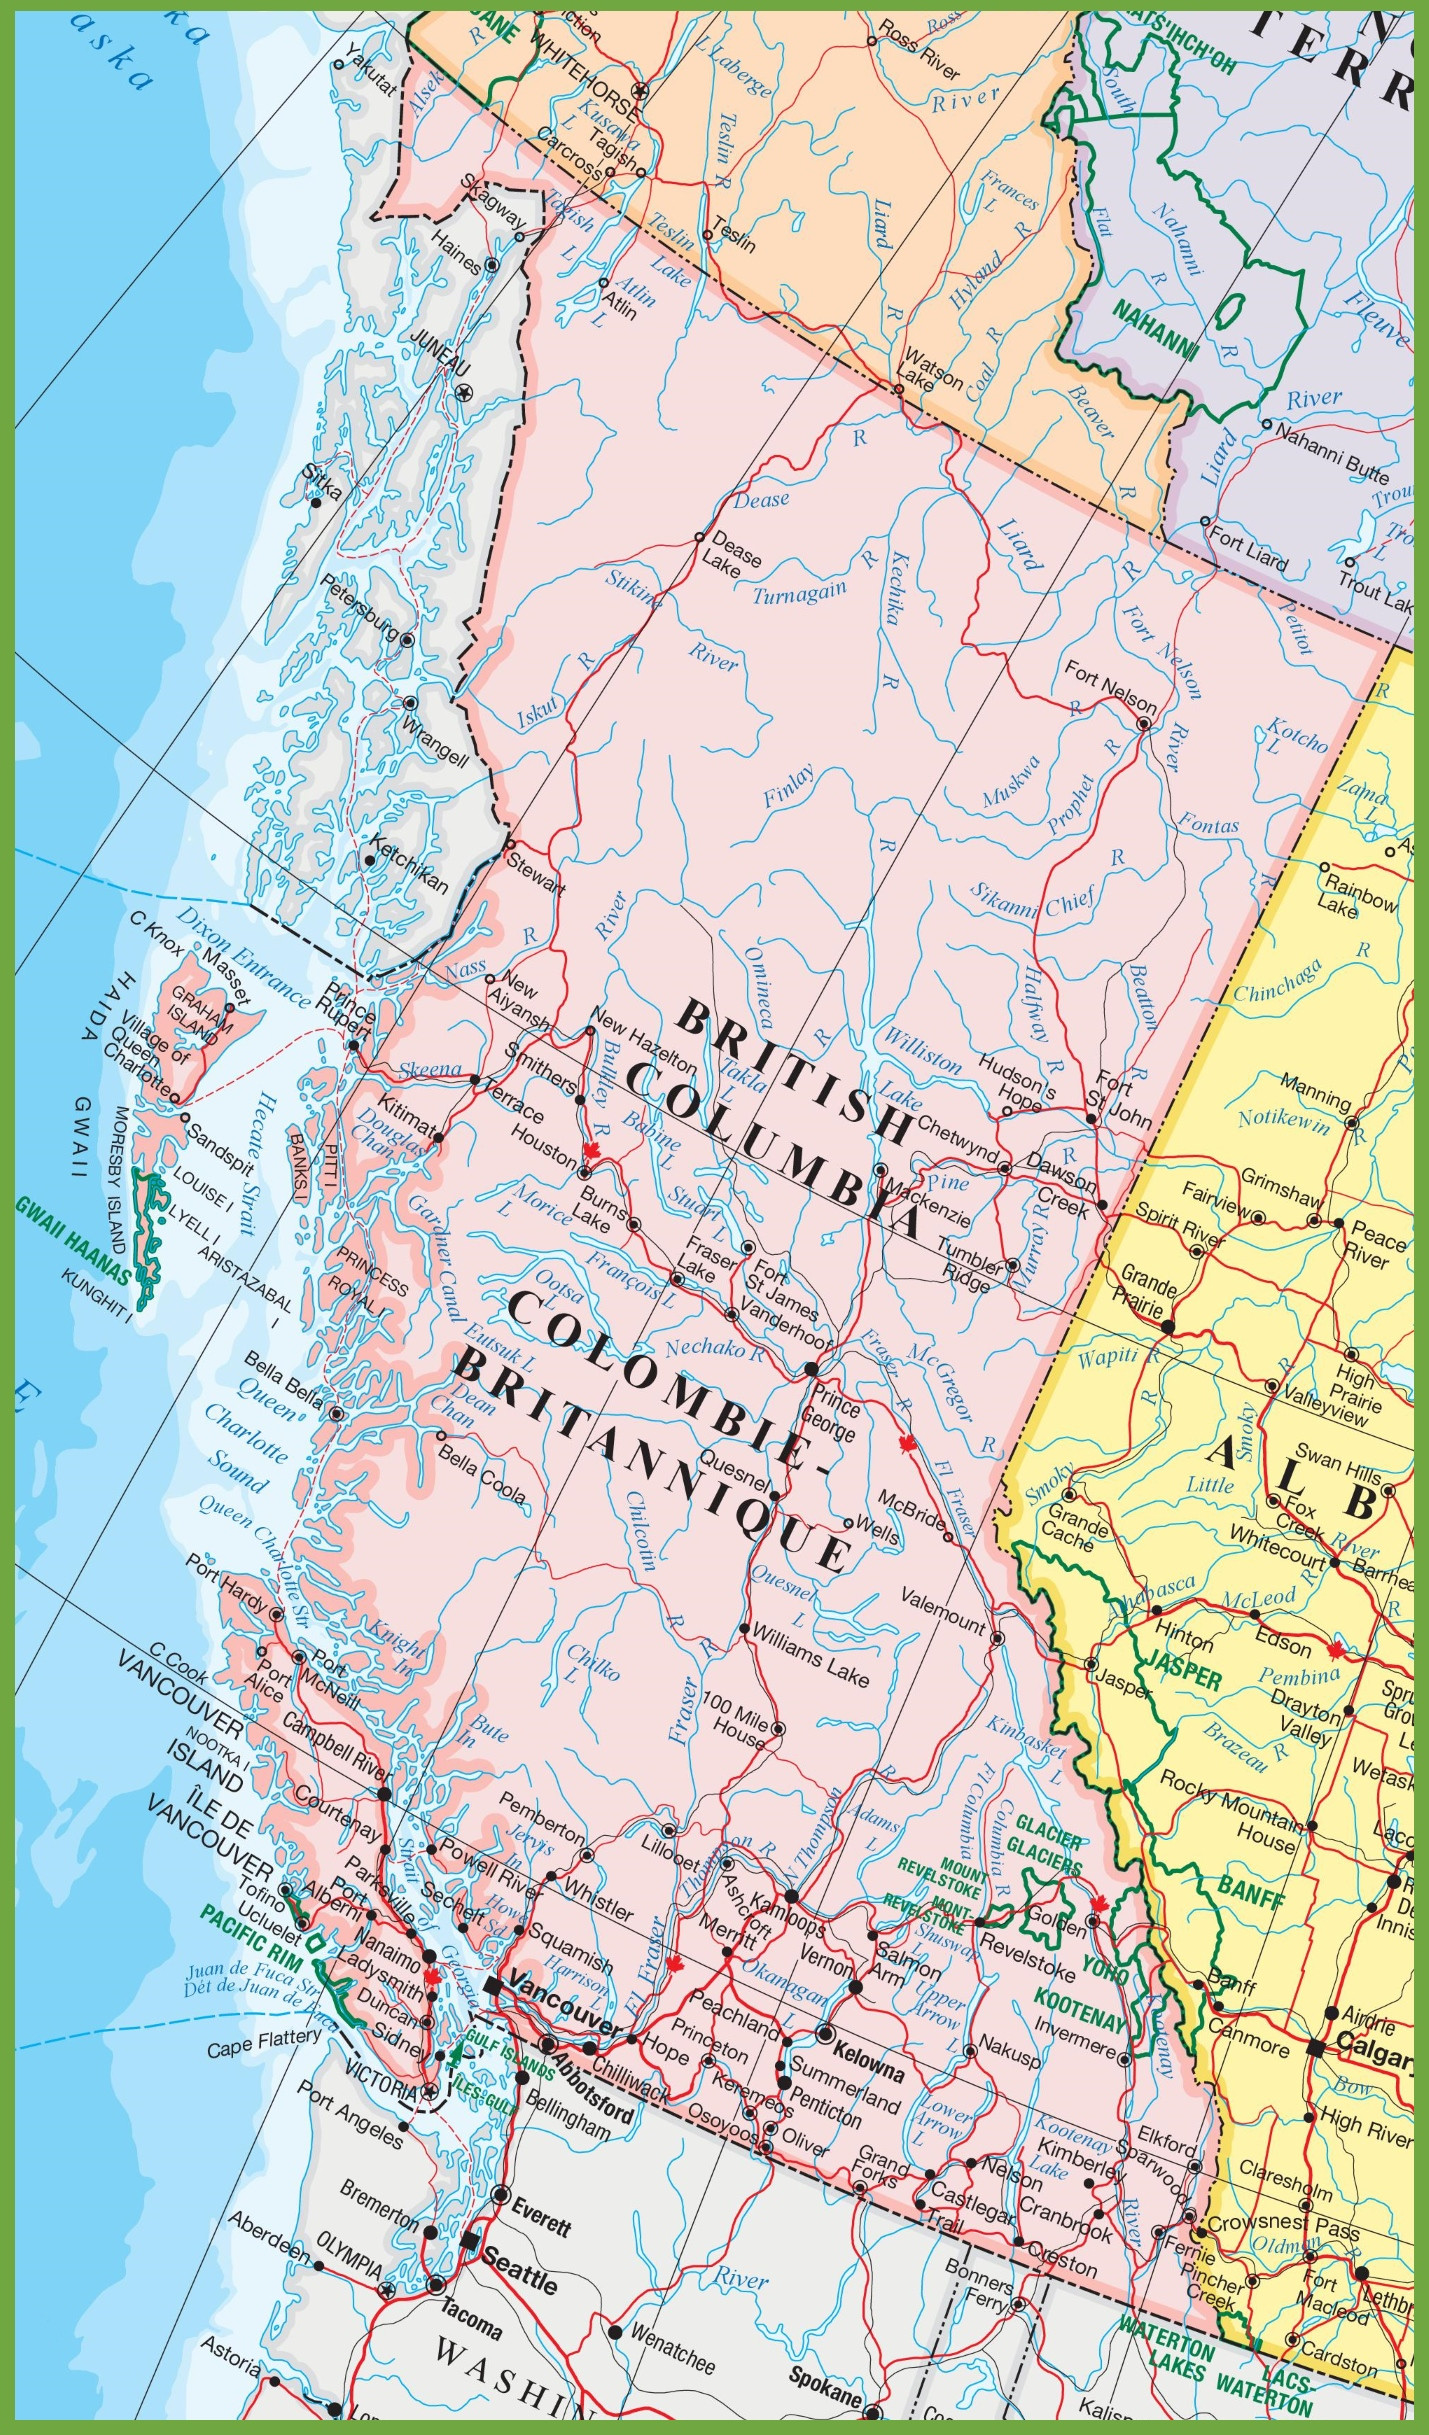 Printable Map Edmonton Best Of Detailed Map Of British Columbia with Cities and towns ï ¿